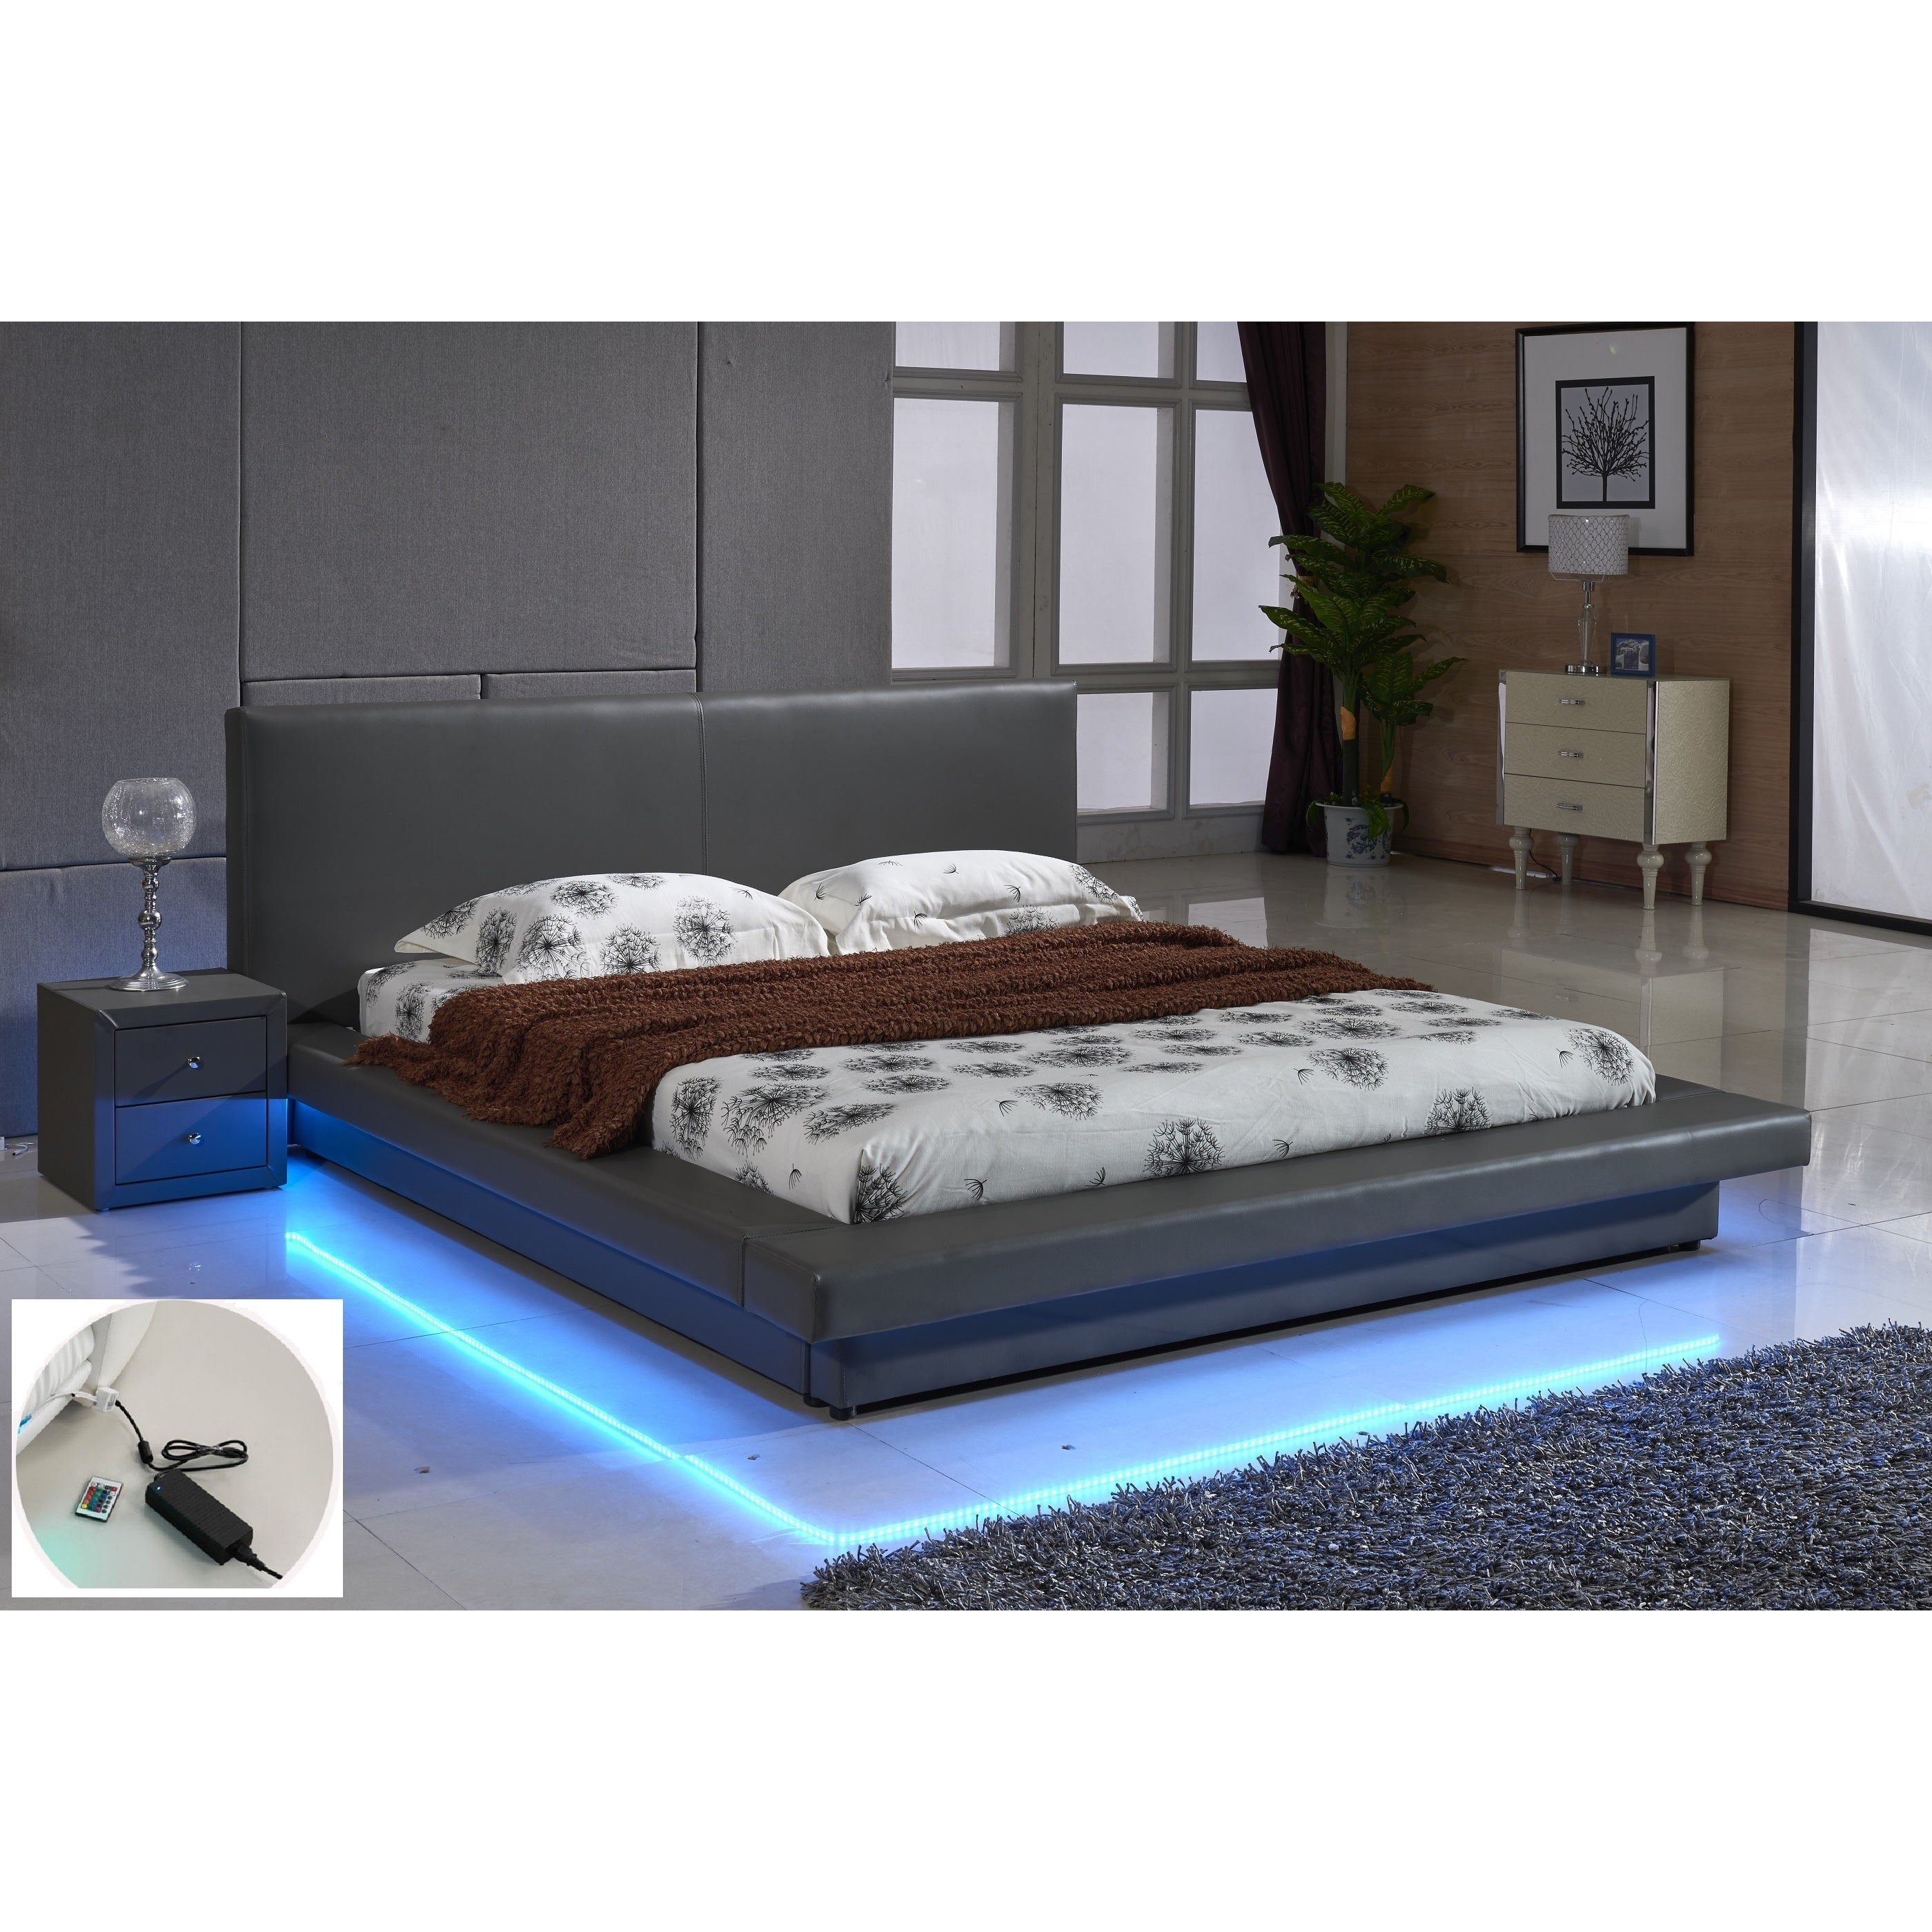 Grey Leather With Led Decoration Strip Light Contemporary Platform Bed Overstock 10993034